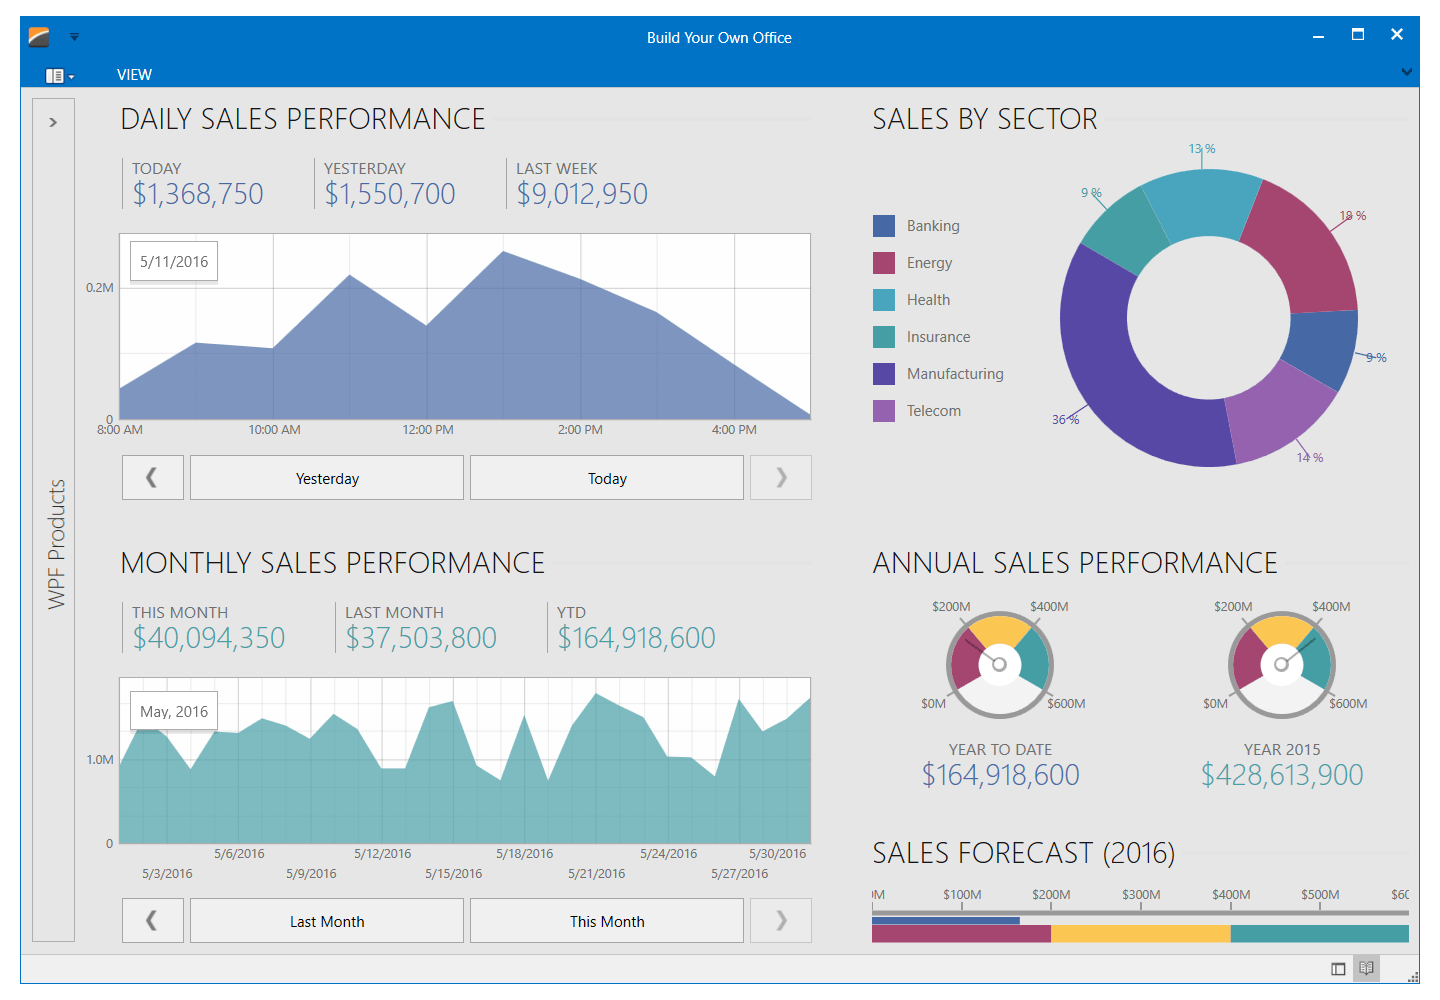 WPF Sales Performance App with Charts and Gauges